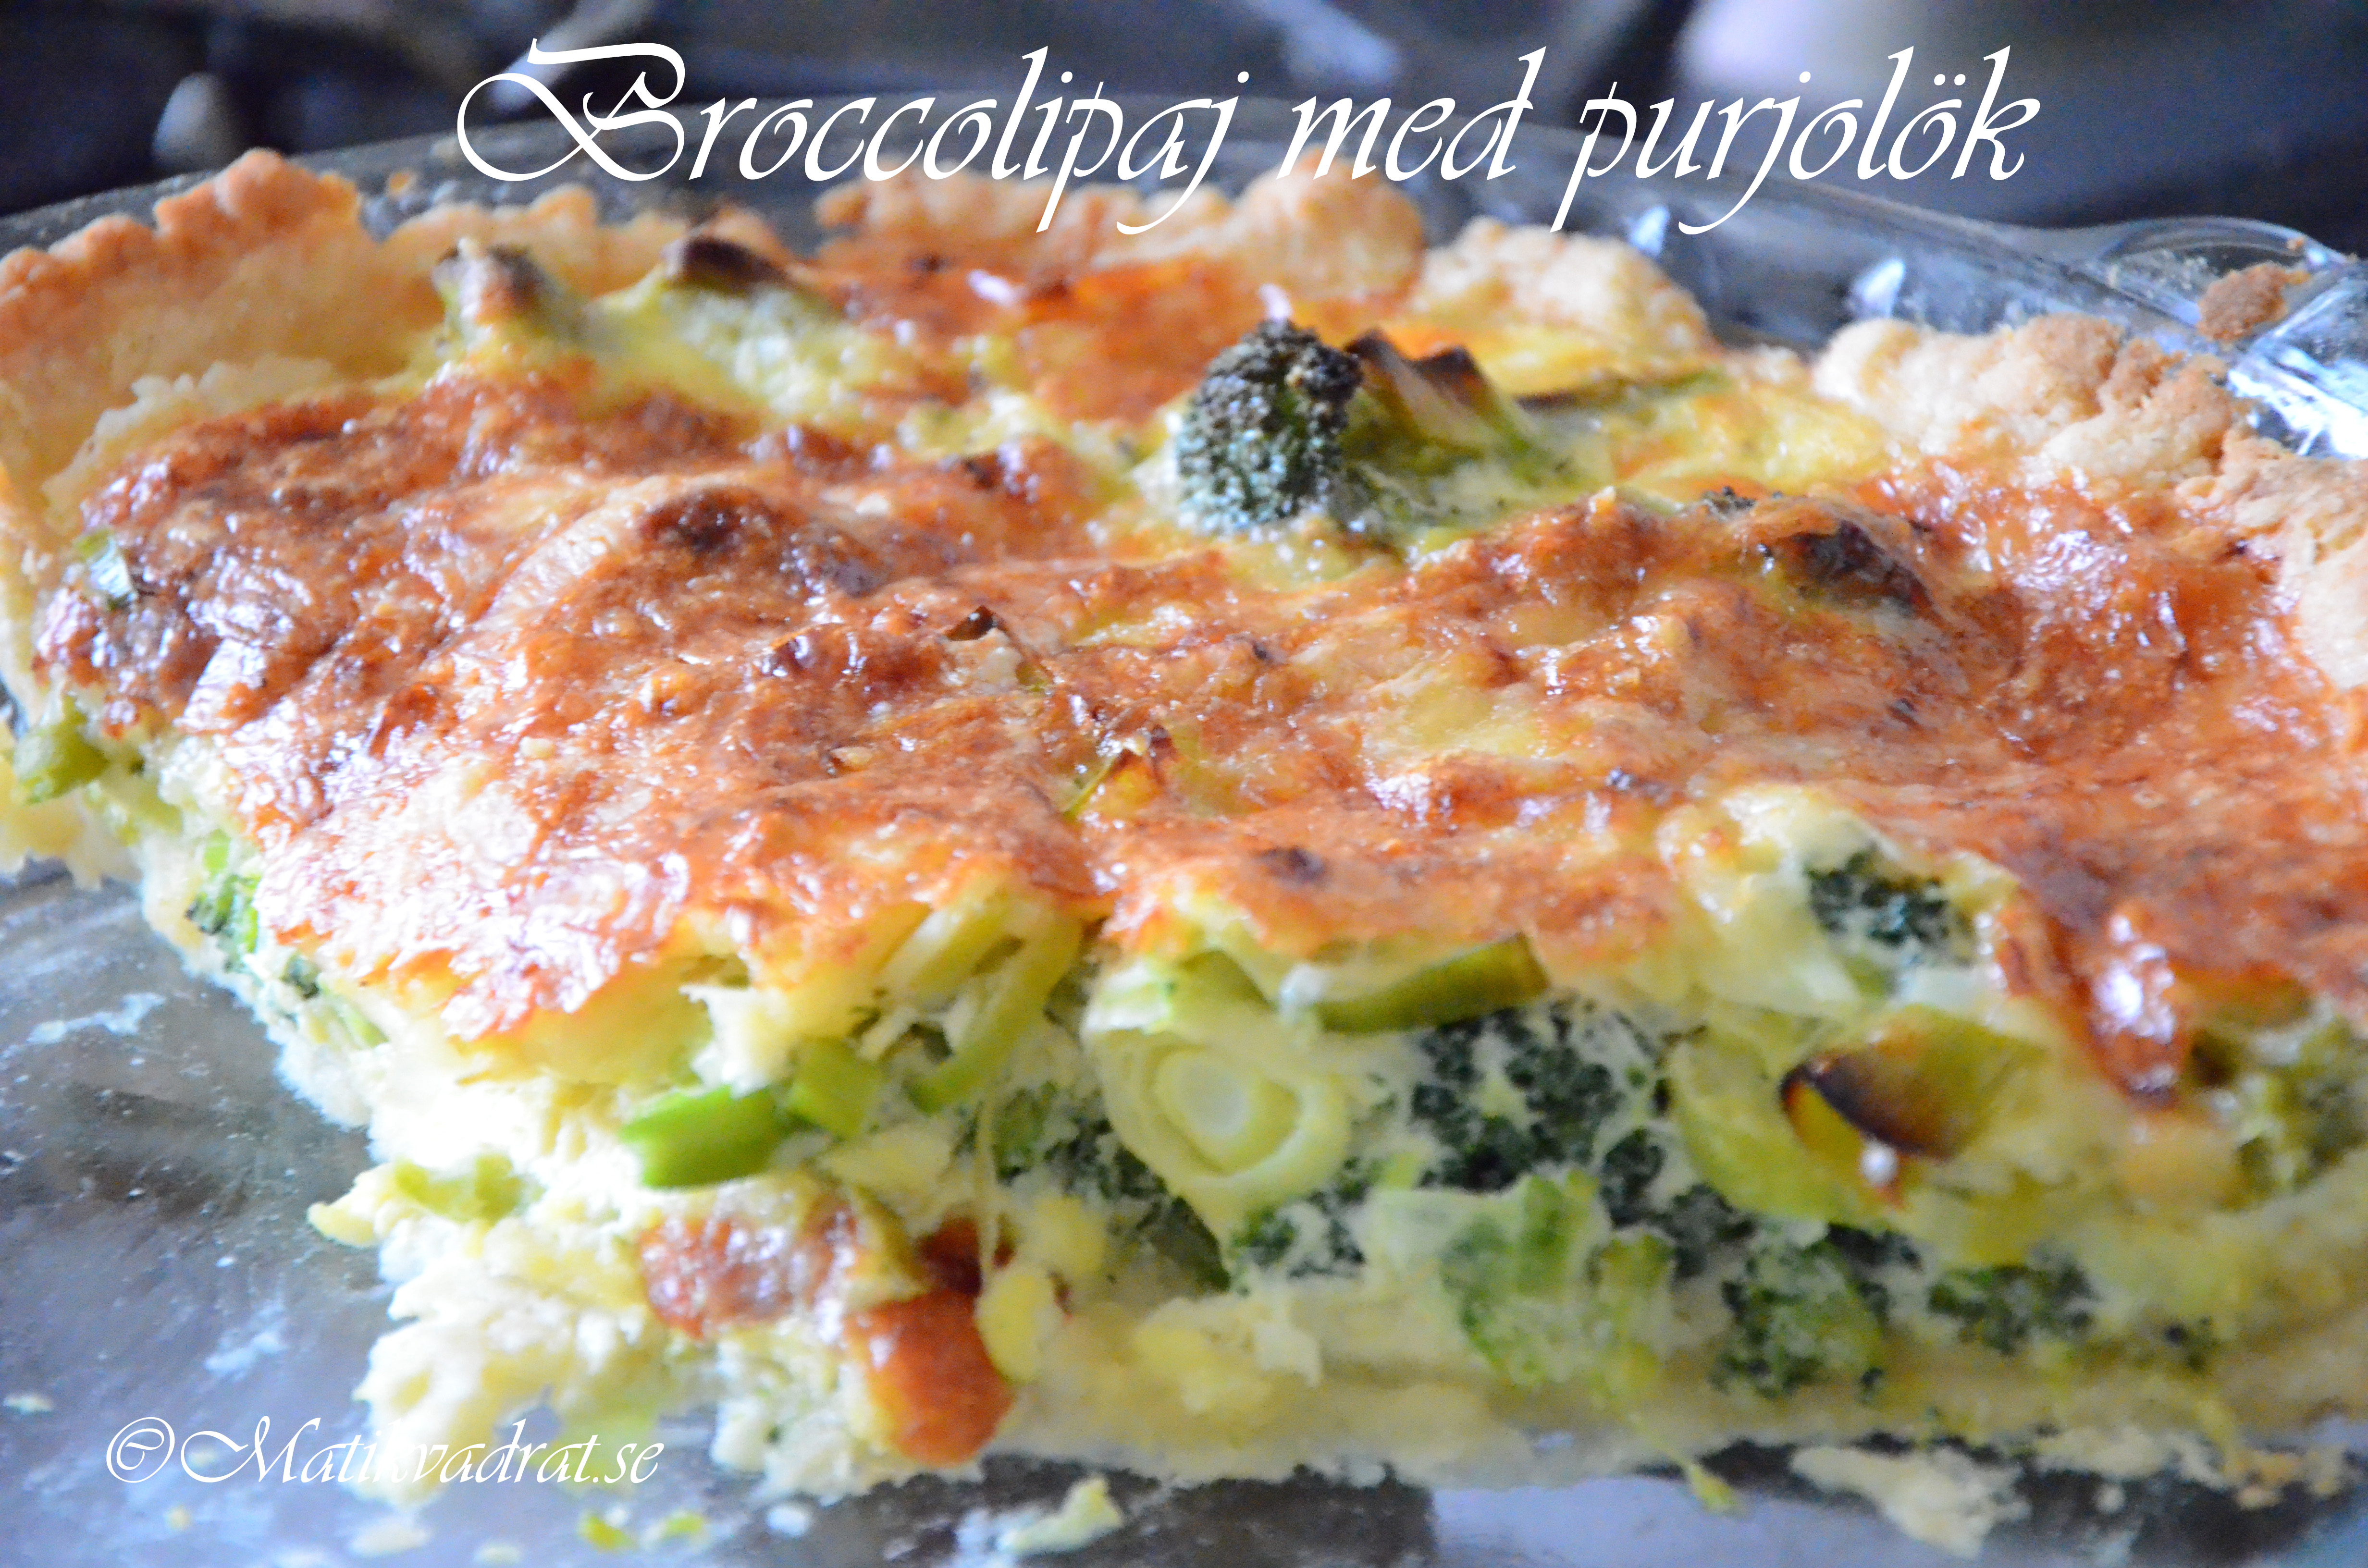 vegetarisk paj broccoli